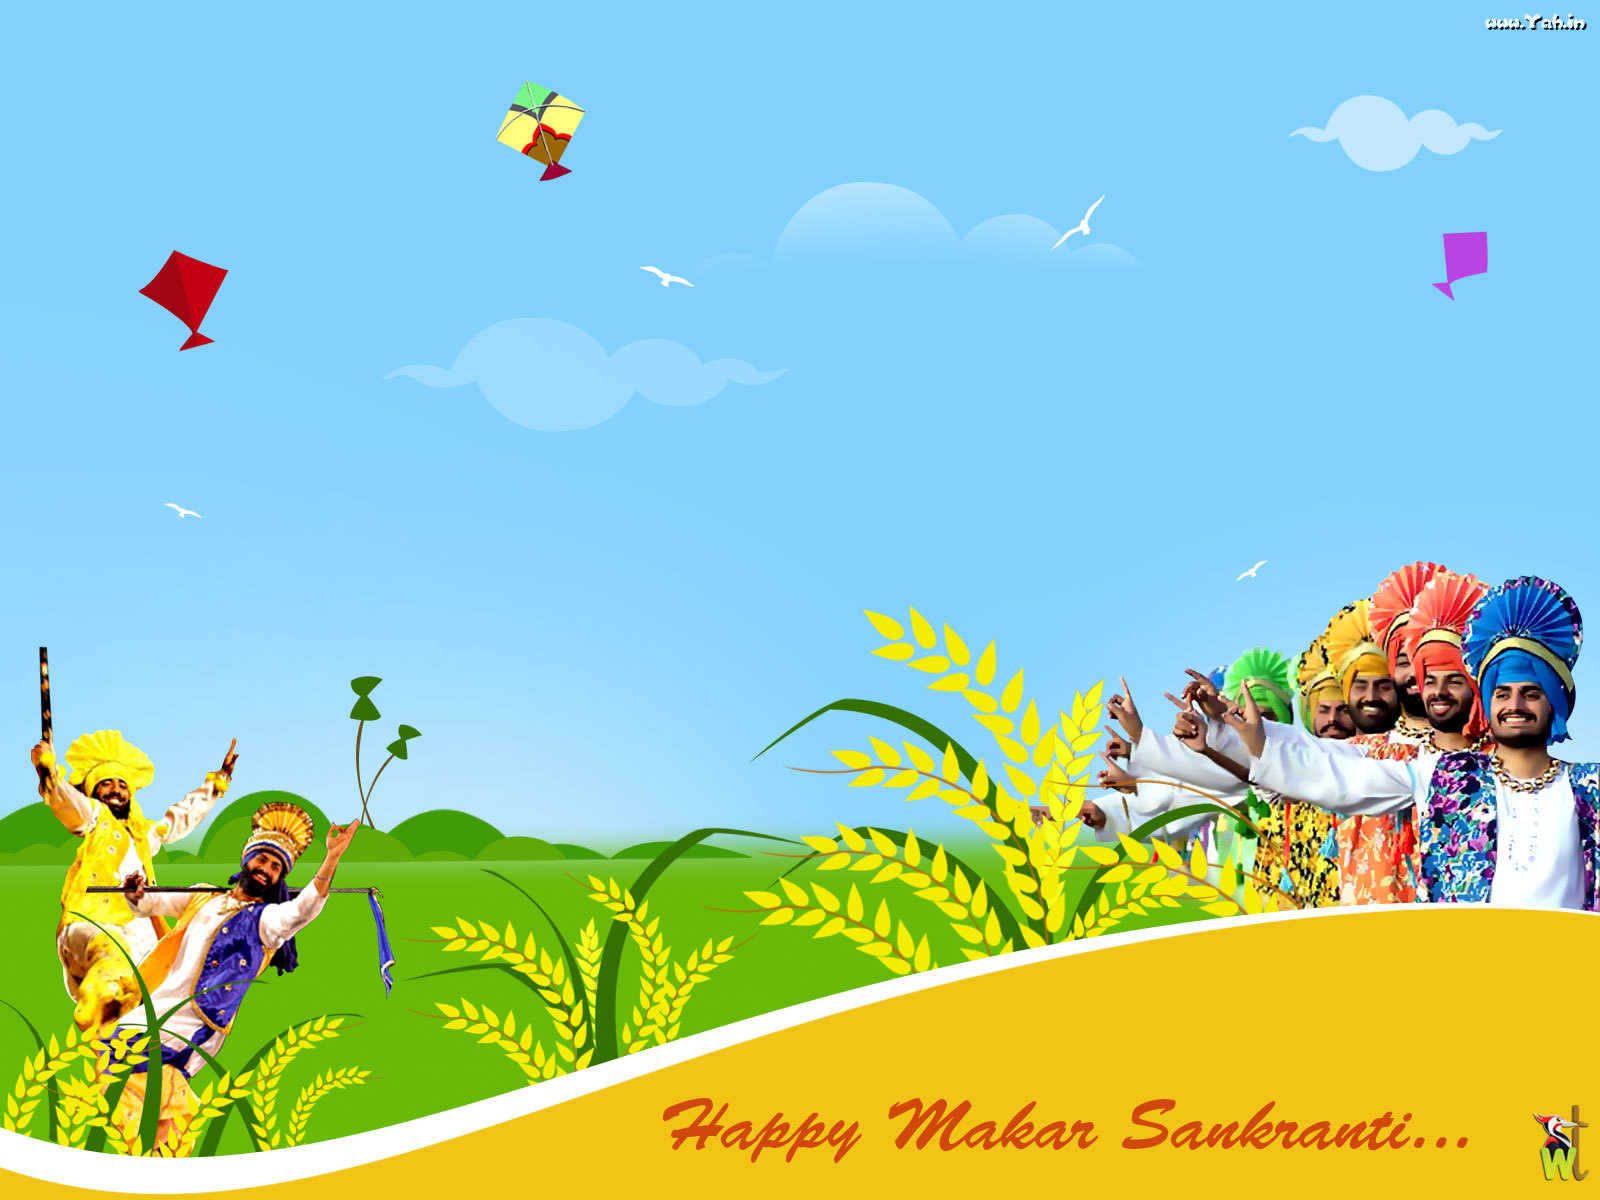 Happy makar sankranti wallpaper | Urban Art Wallpaper